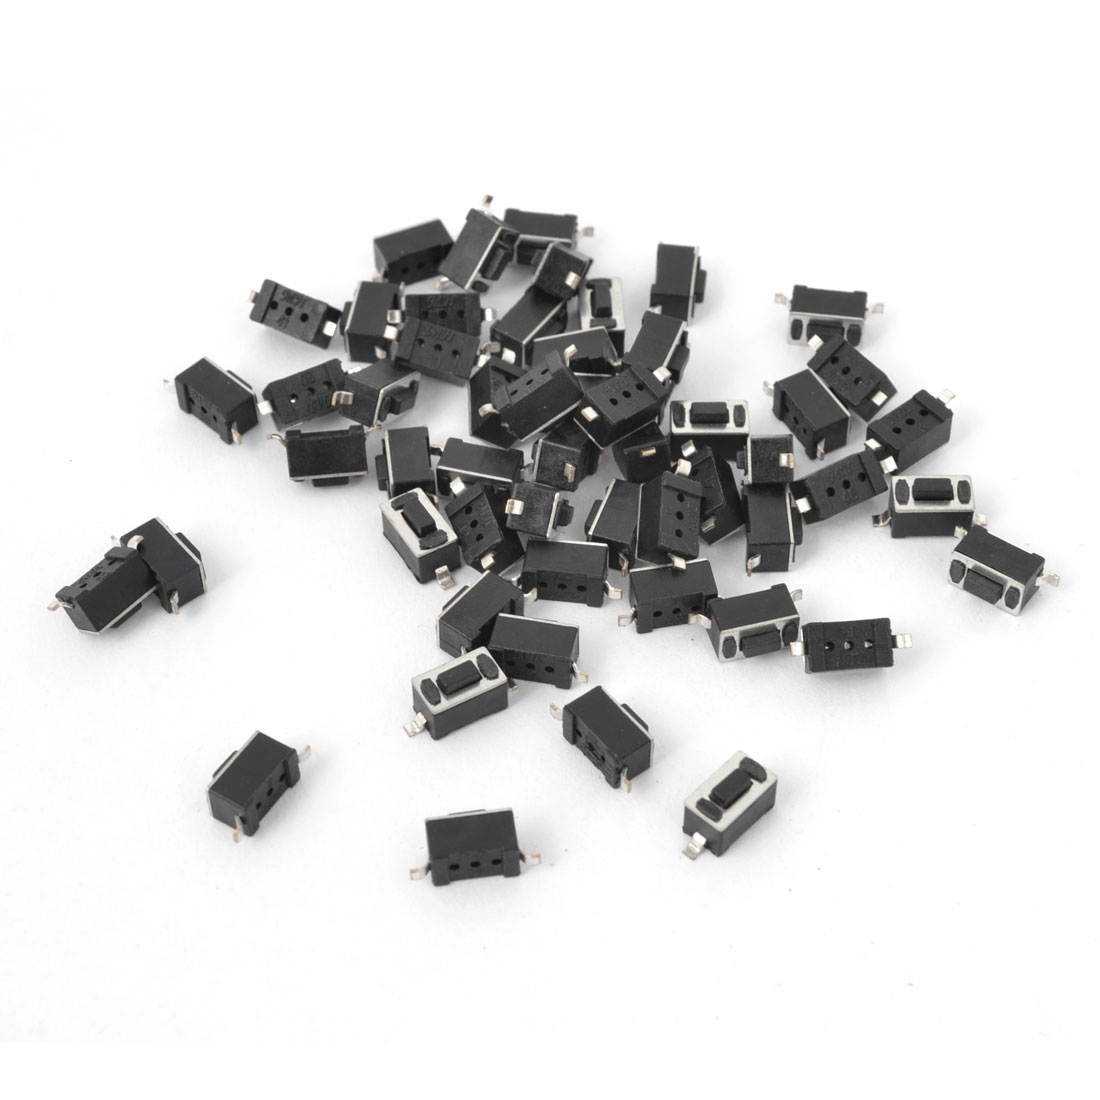 55Pcs Momentary Tact Tactile Push Button Switch 3x6x4.3mm 2-Terminals